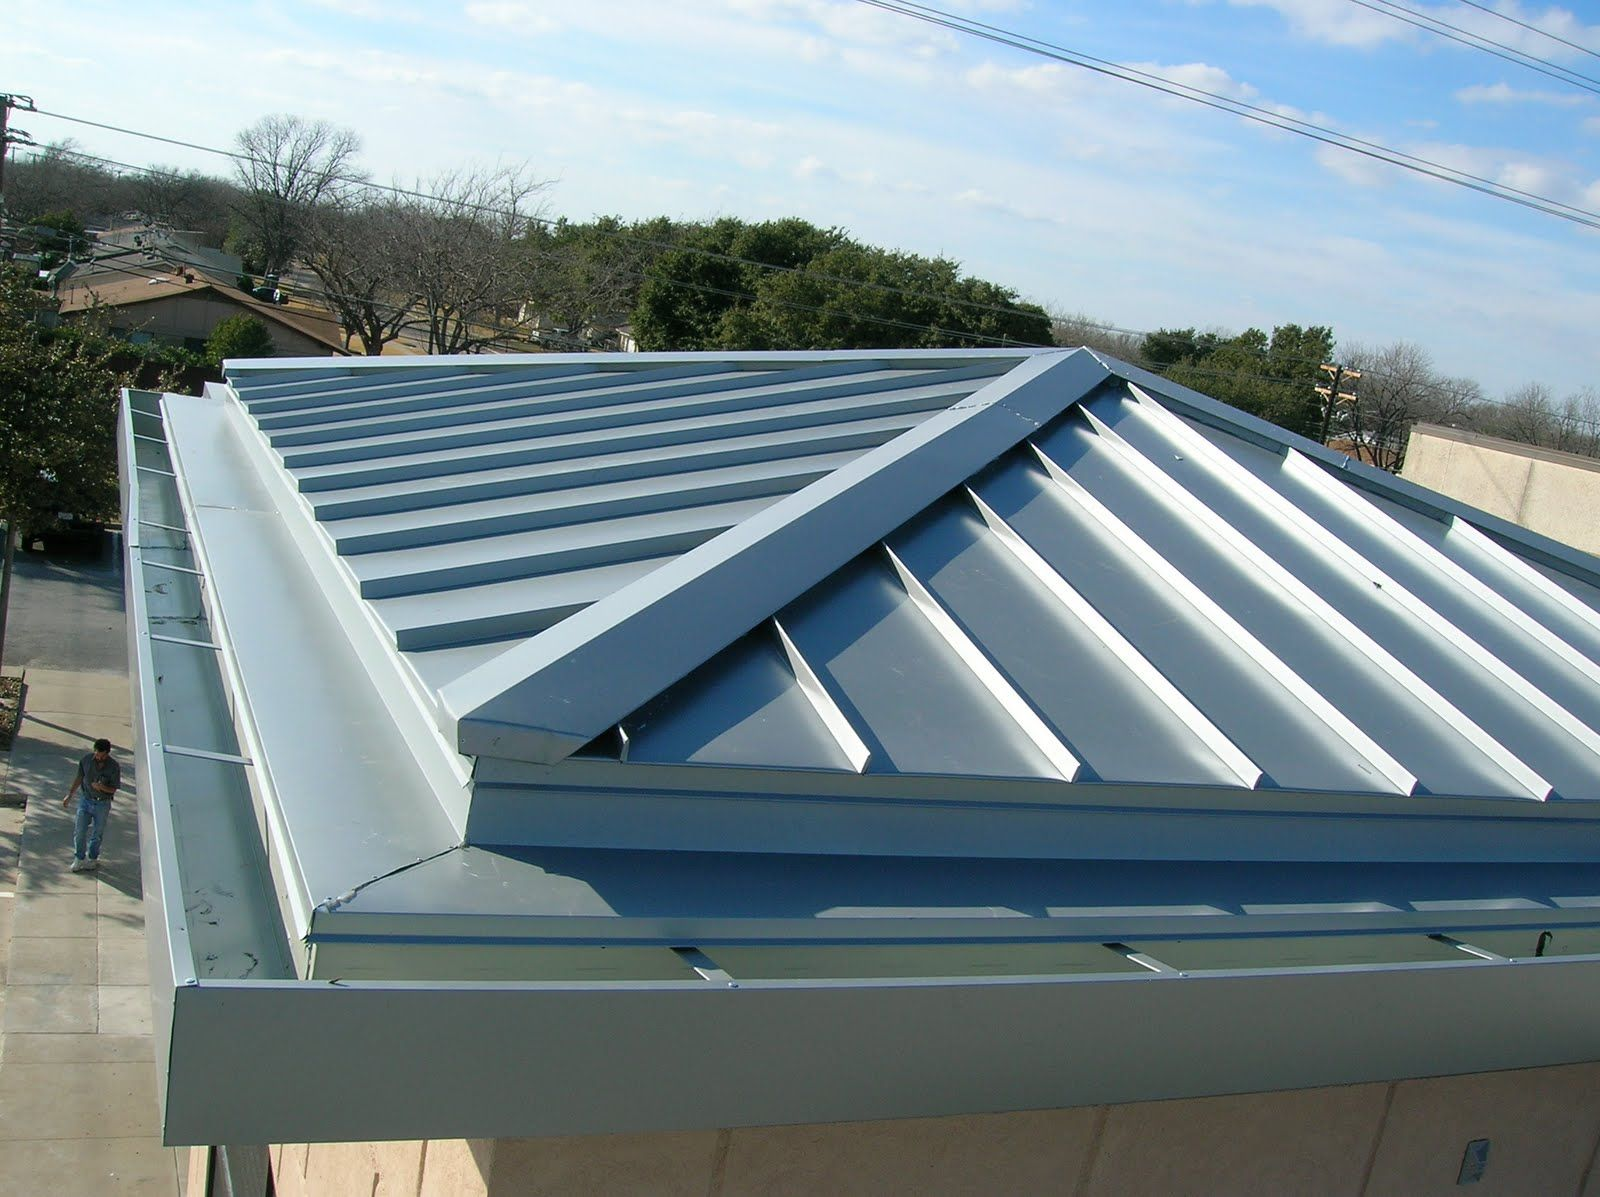 Painted Metal Roofing & Siding | Metal Roofs | Pinterest | Painted ...